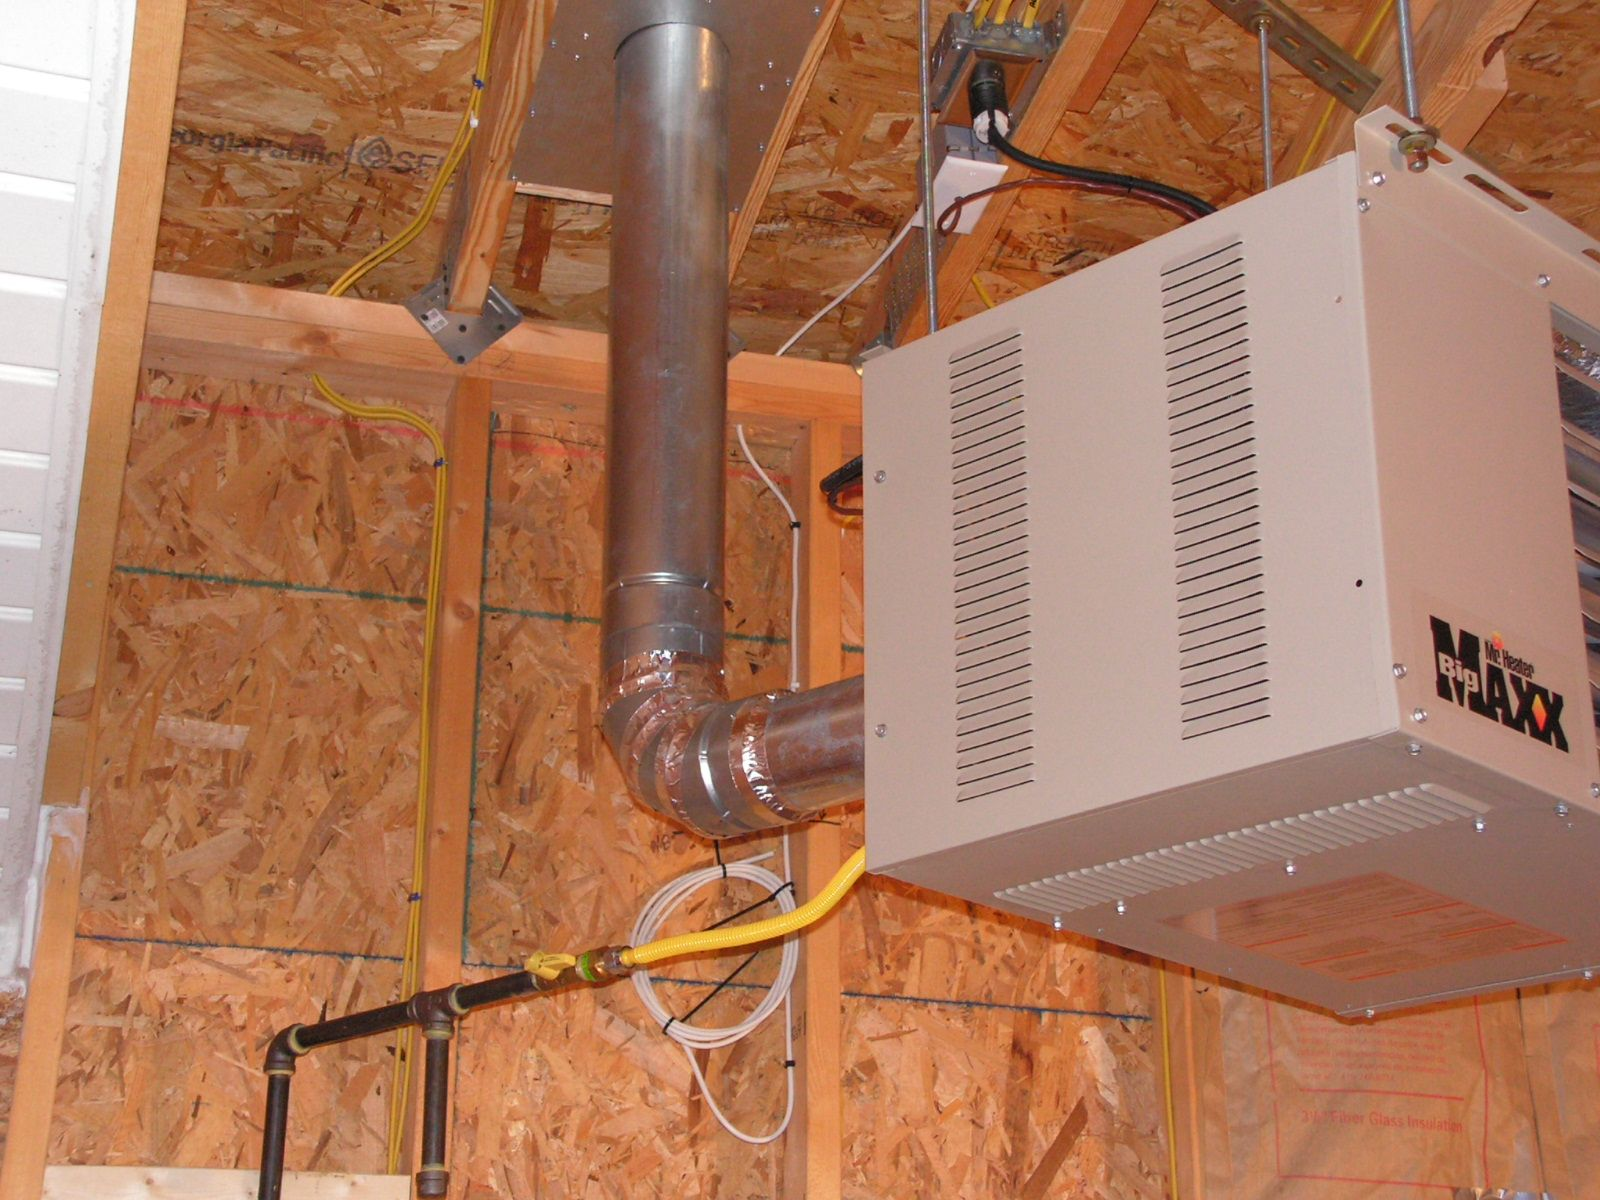 TV SPA Jacuzzi Family Luxury Hot Tub in addition vTcSfv likewise ELECTRIC POWER STEERING BD likewise Empyre Elite Diagram Wiring besides  likewise Tankless Water Heater Recirculation Pump System besides grays lasko ceramic heaters 5160 64 1000 in addition  additionally A Dry Sauna Heater in addition 43783d1419470309 question amana heat pump amanaaph15 as well infrared waves definition uses ex les 01001114 133518. on sauna heater wiring diagram